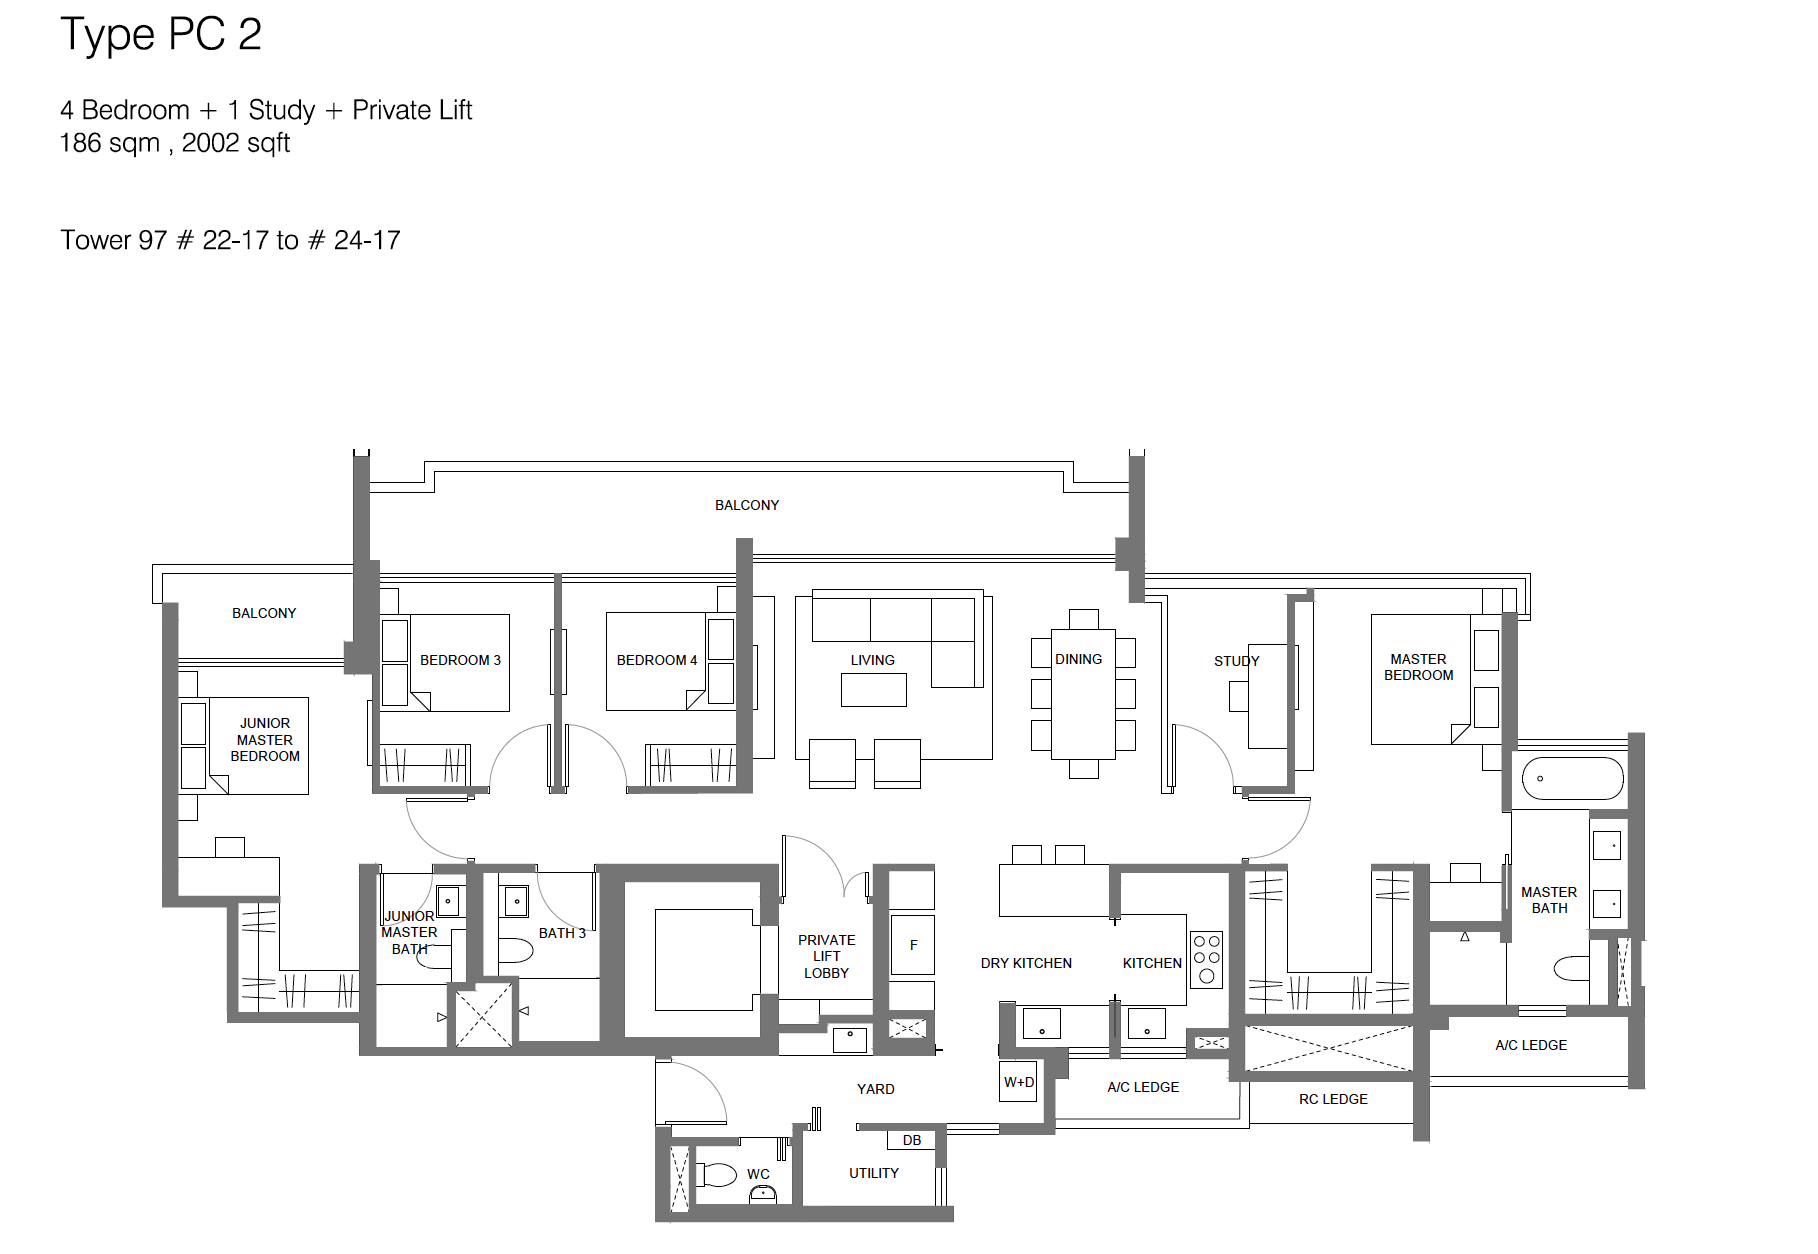 Principal Garden floor plan - 4 bedroom + study + private lift